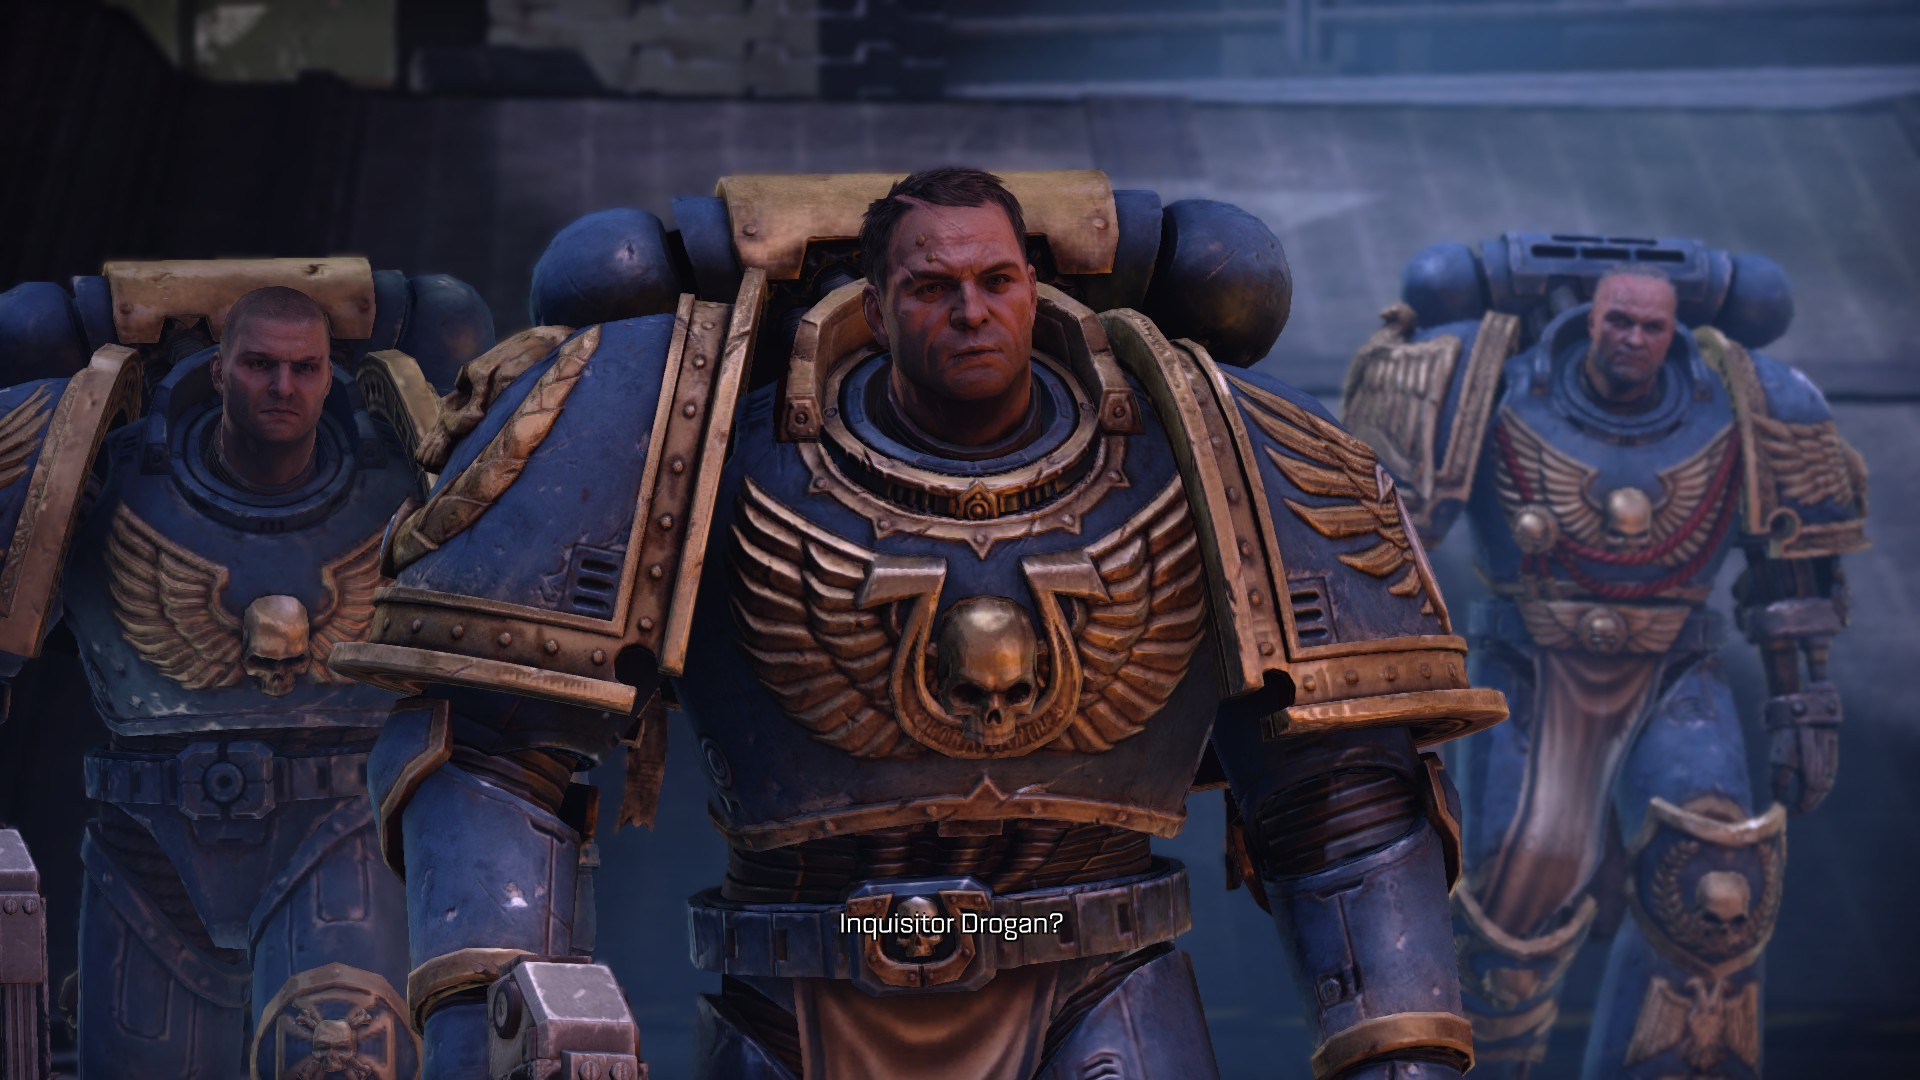 Warhammer 40,000: Space Marine - Steam Key + GIFTS